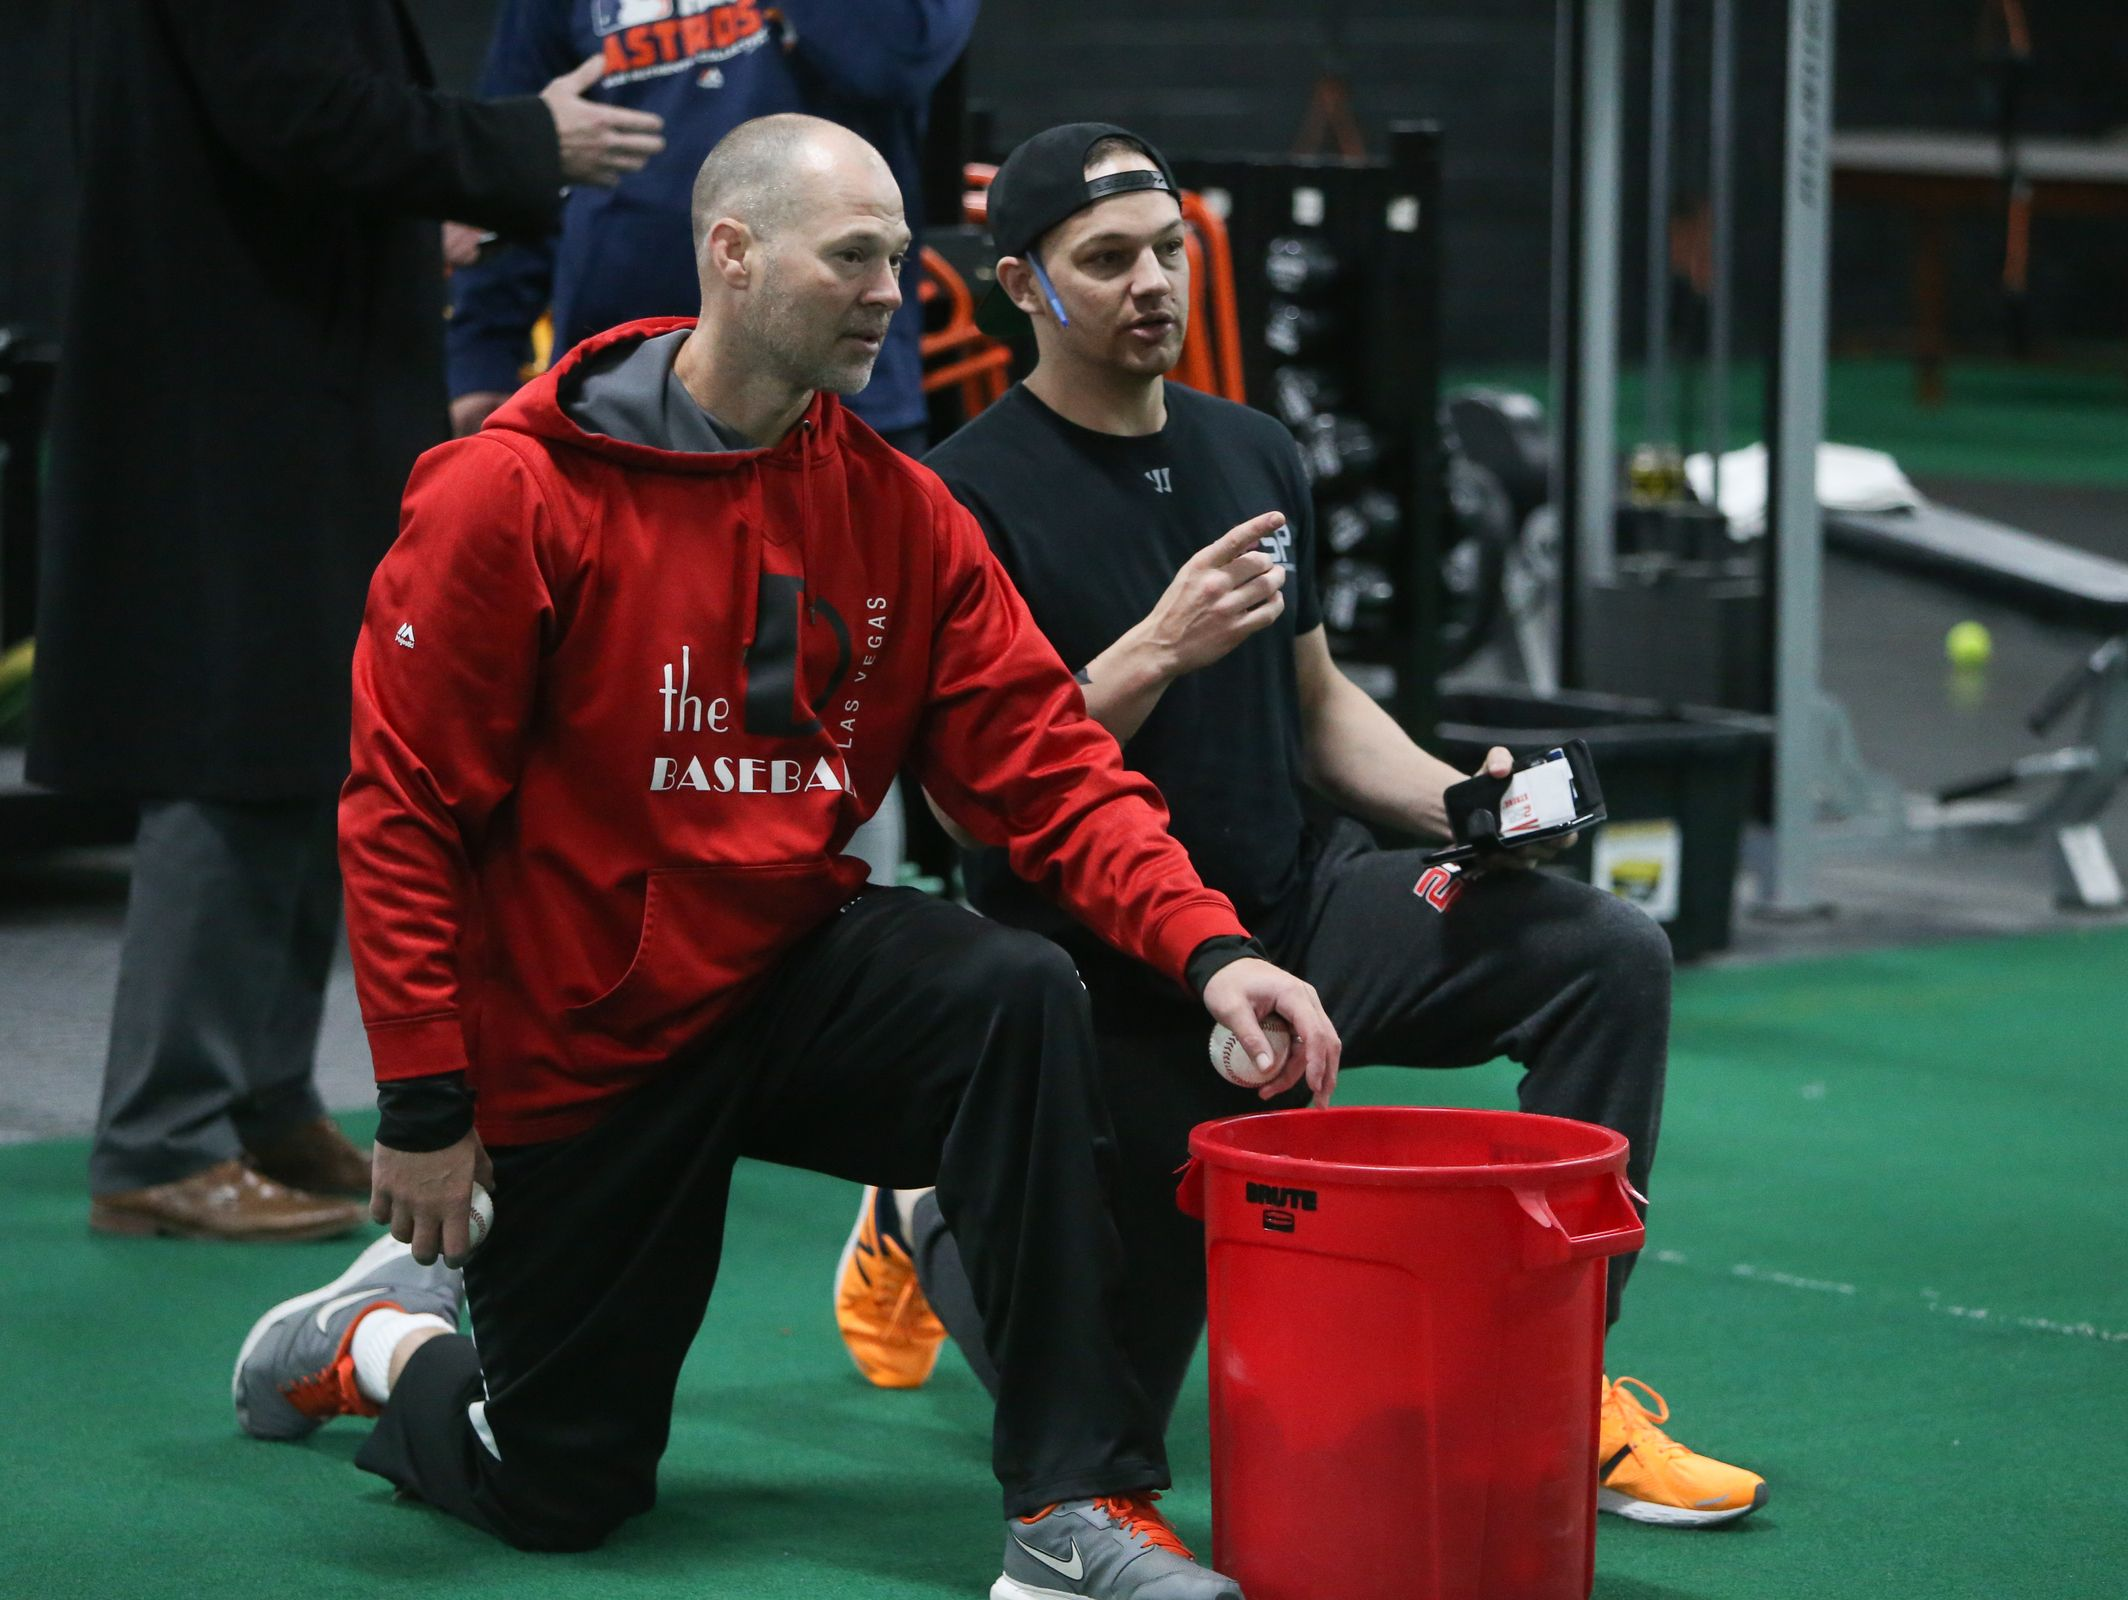 Infield coach Brian Kalczynski, left, and strength coach Joe Neal work with Colorado Rockies All-Star DJ LeMahieu at 2SP Sports Performance facility in Madison Heights on Jan. 16, 2017.